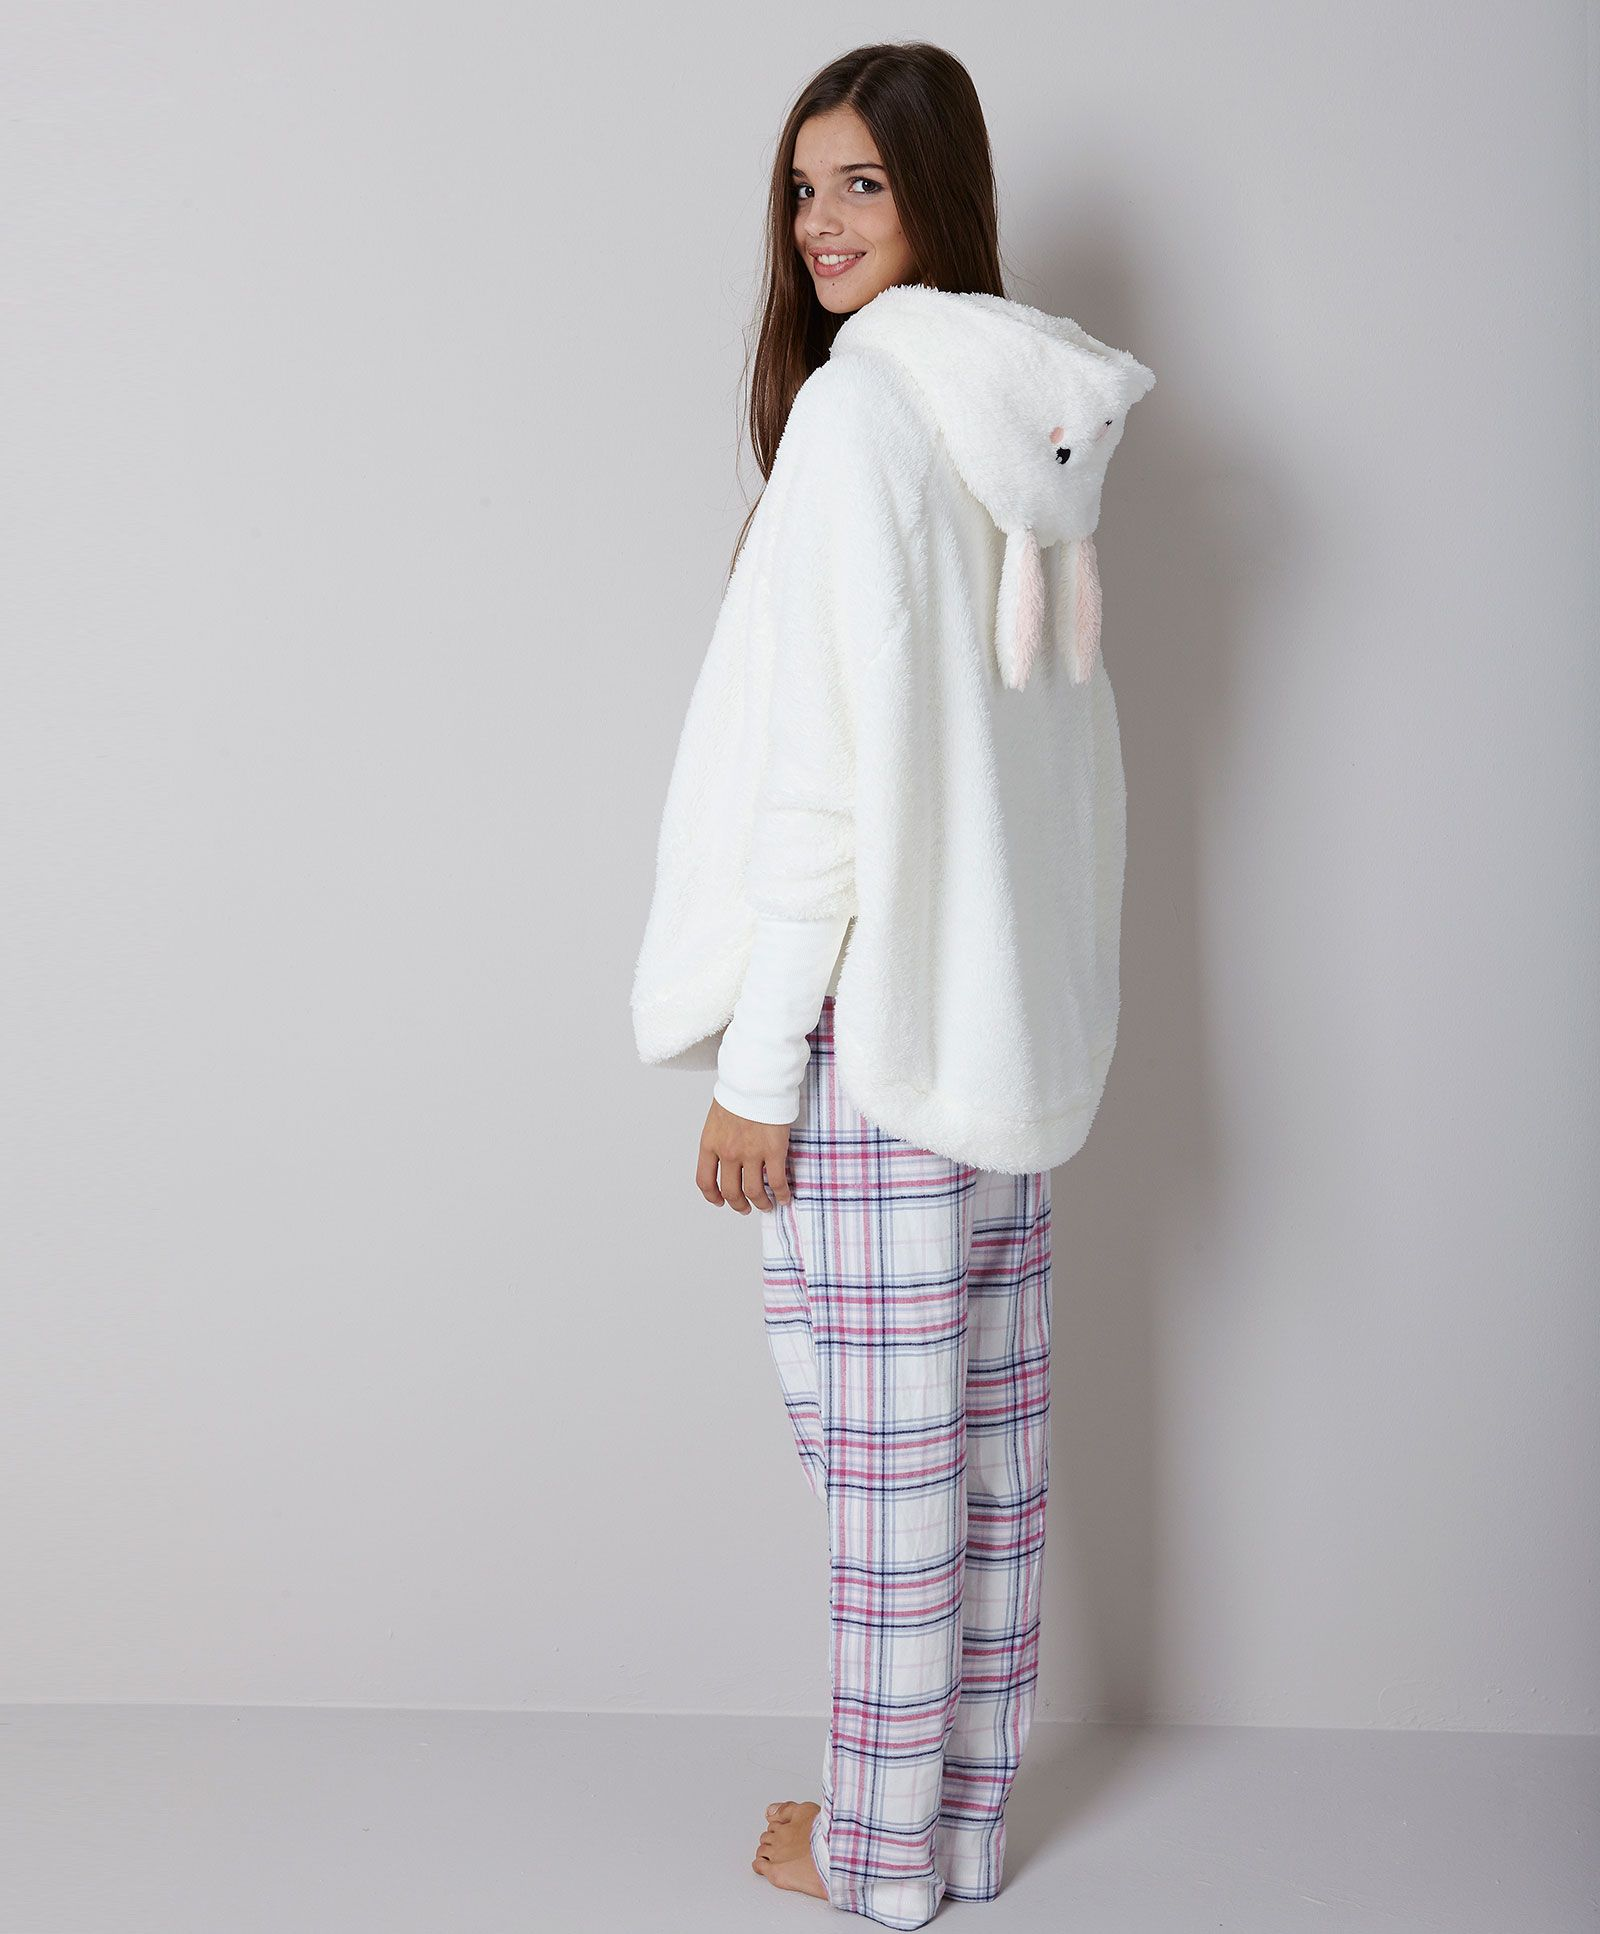 Rabbit poncho - null Spring Summer 2017 trends in women fashion at Oysho  online. Find